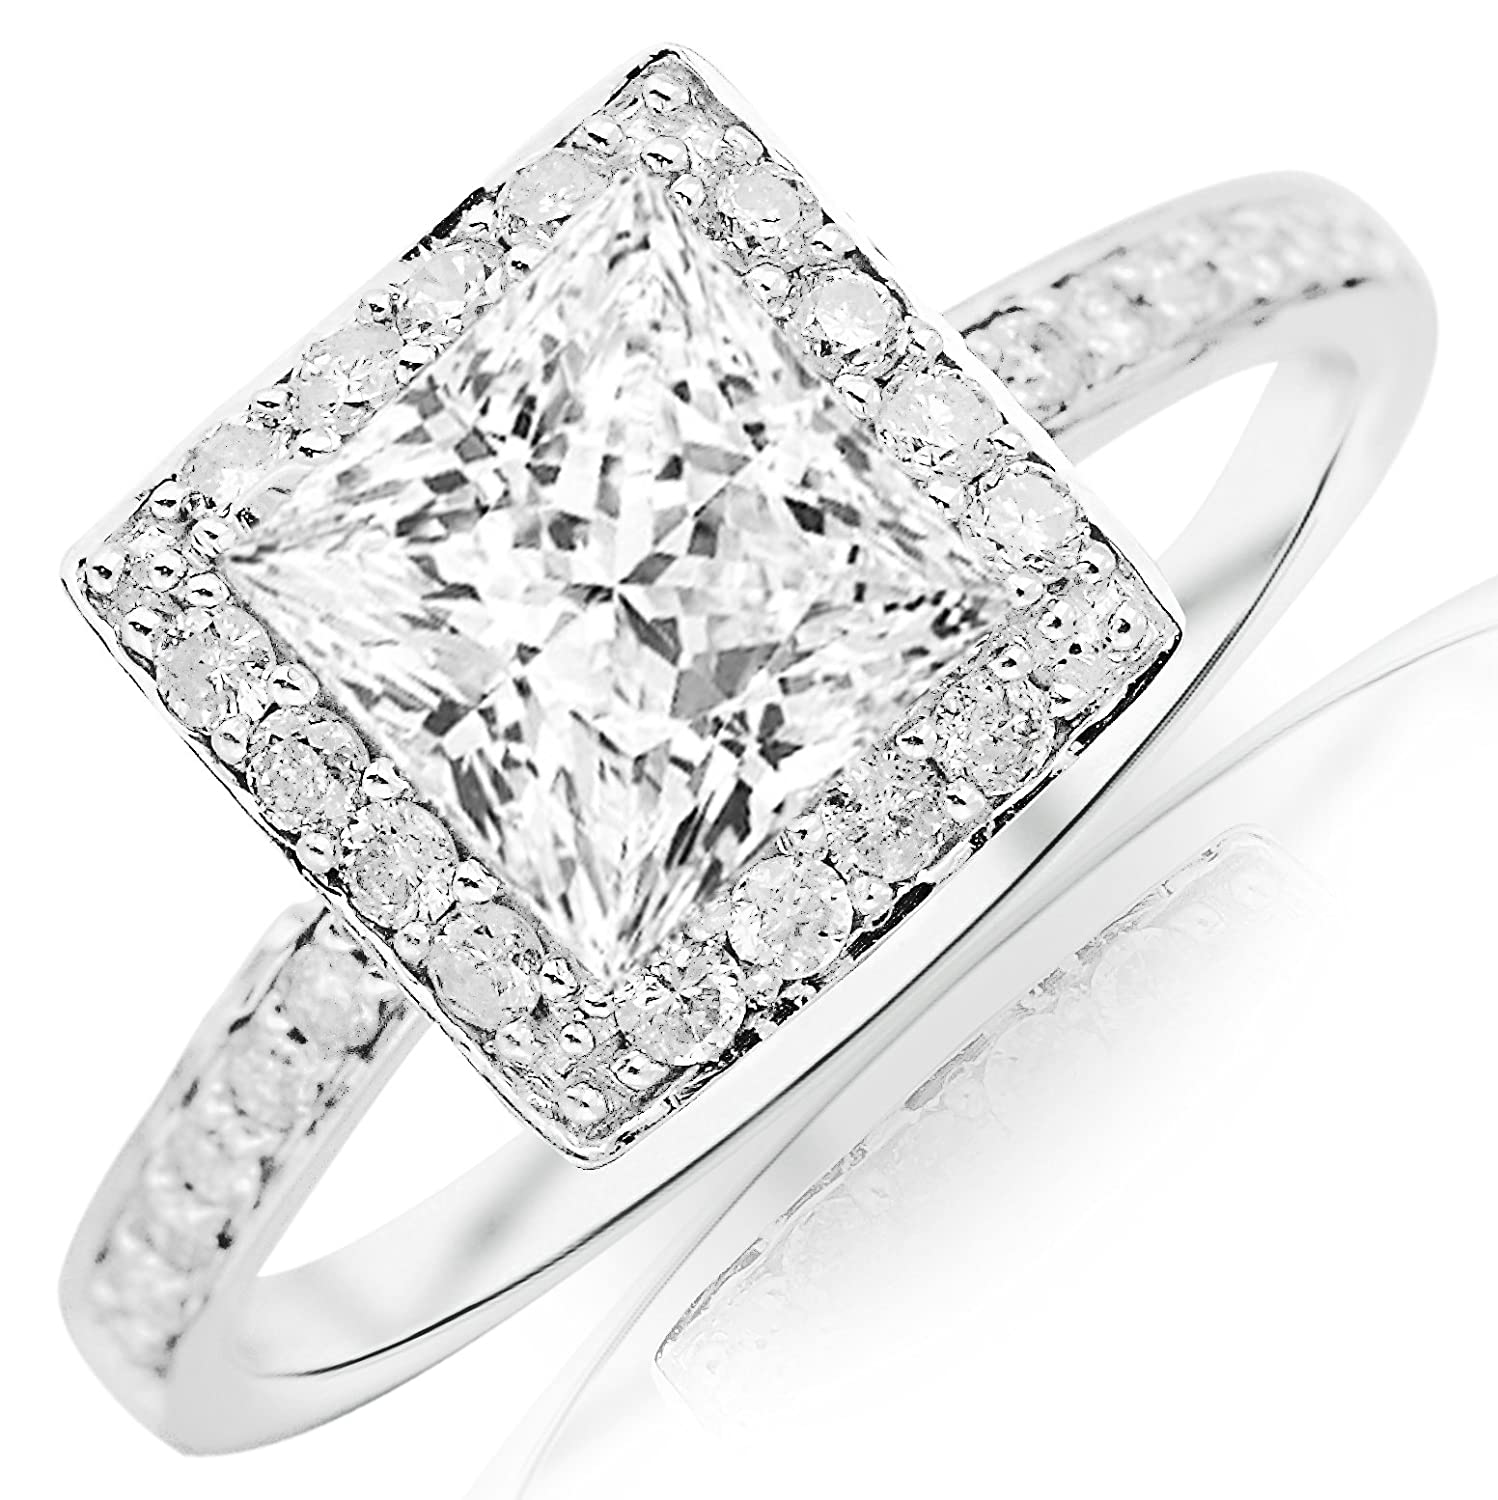 ring h engagement bridal watches diamond today free promise rings shipping silver product square halo overstock tdw set g sterling jewelry